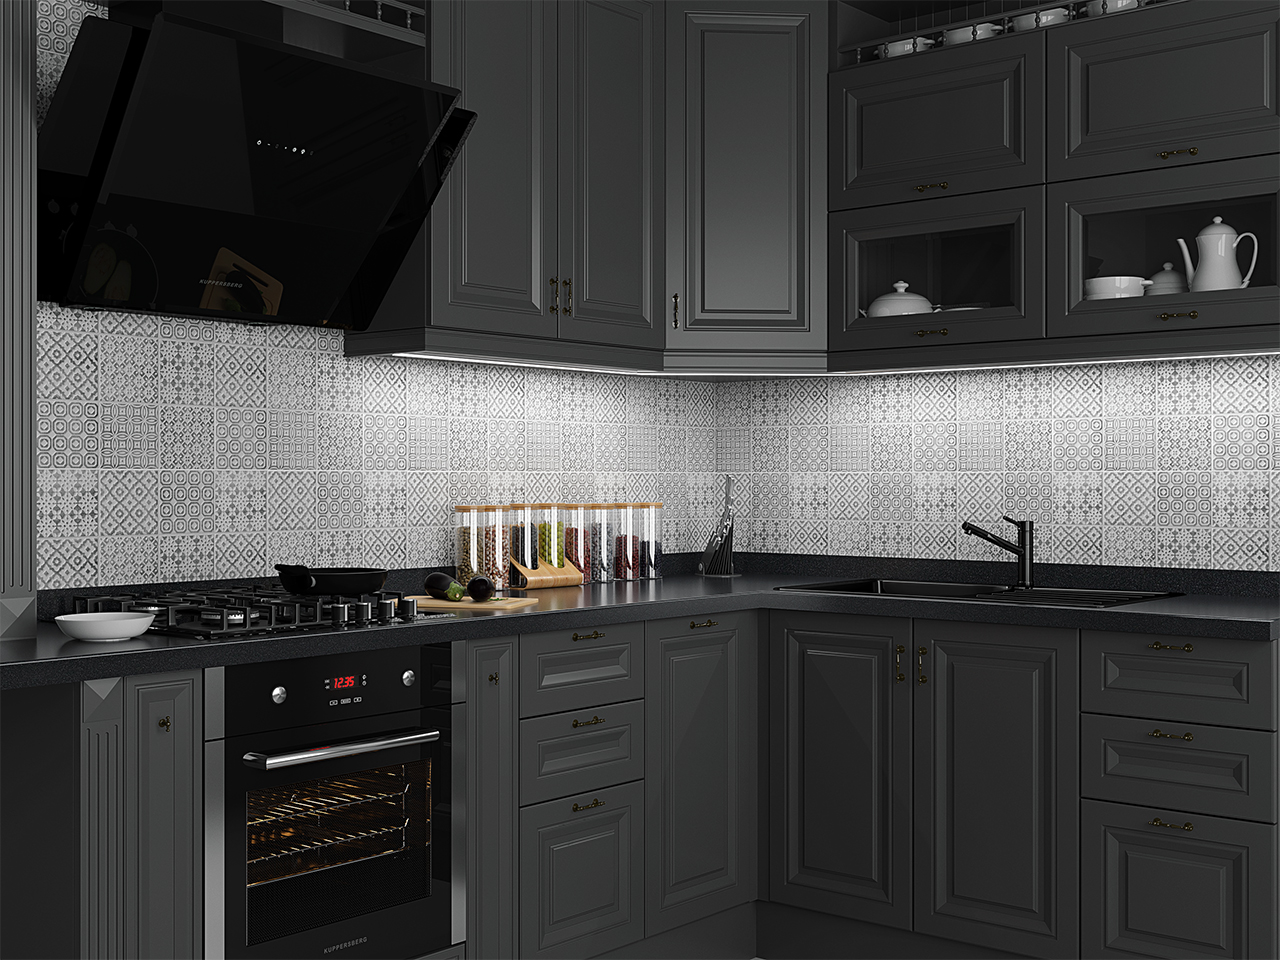 light up your kitchen with our aluminium profiles and LED strips